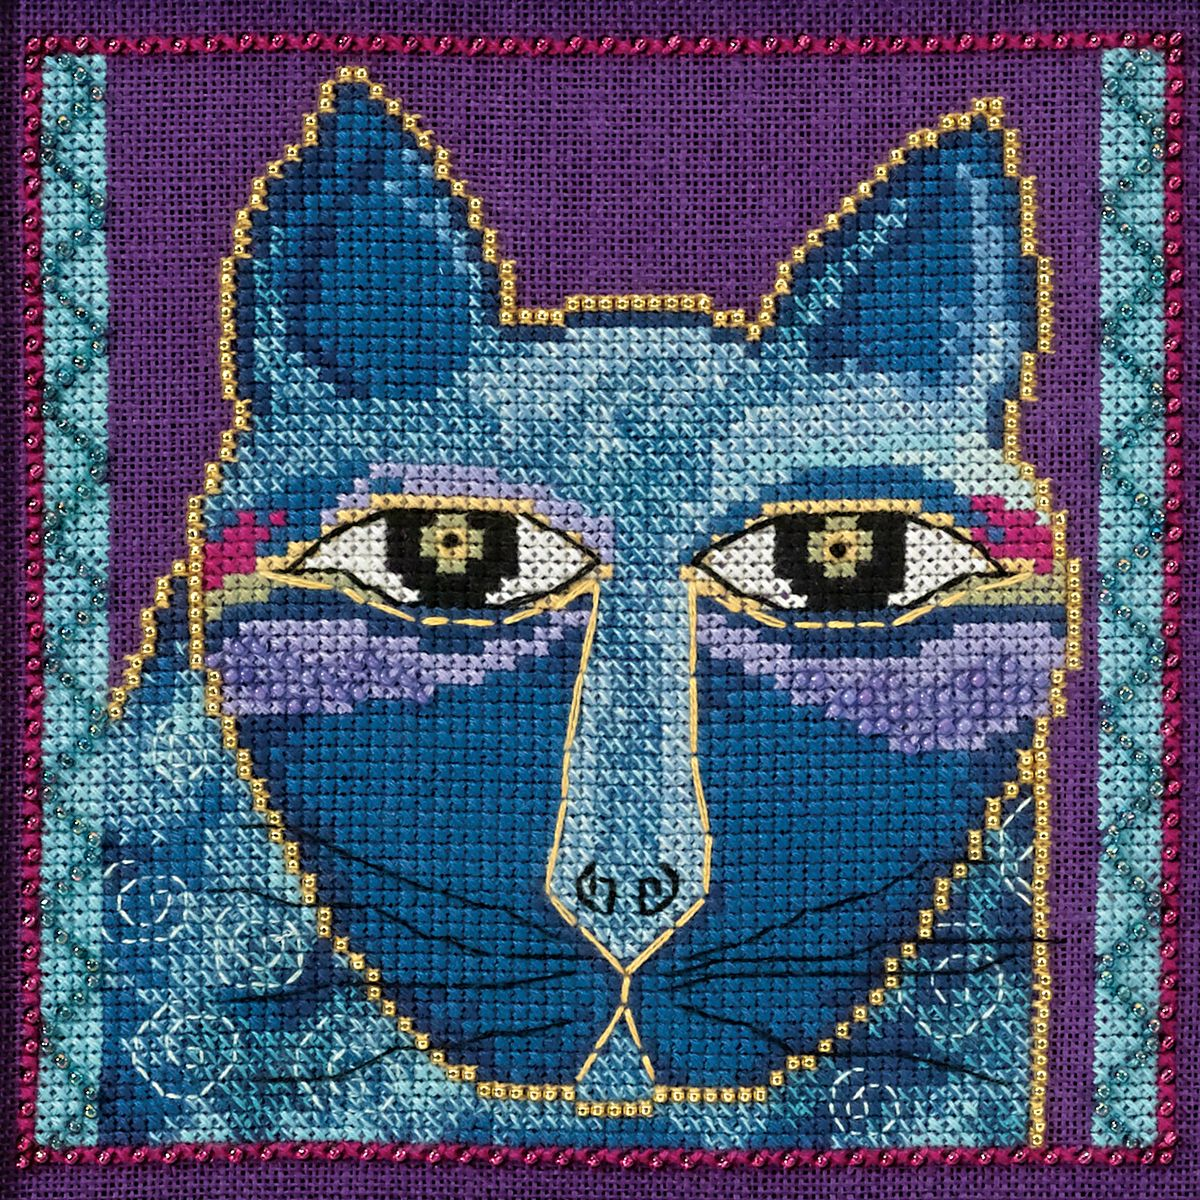 Embroidery & Cross Stitch Laurel Burch Wild Blue Cat On